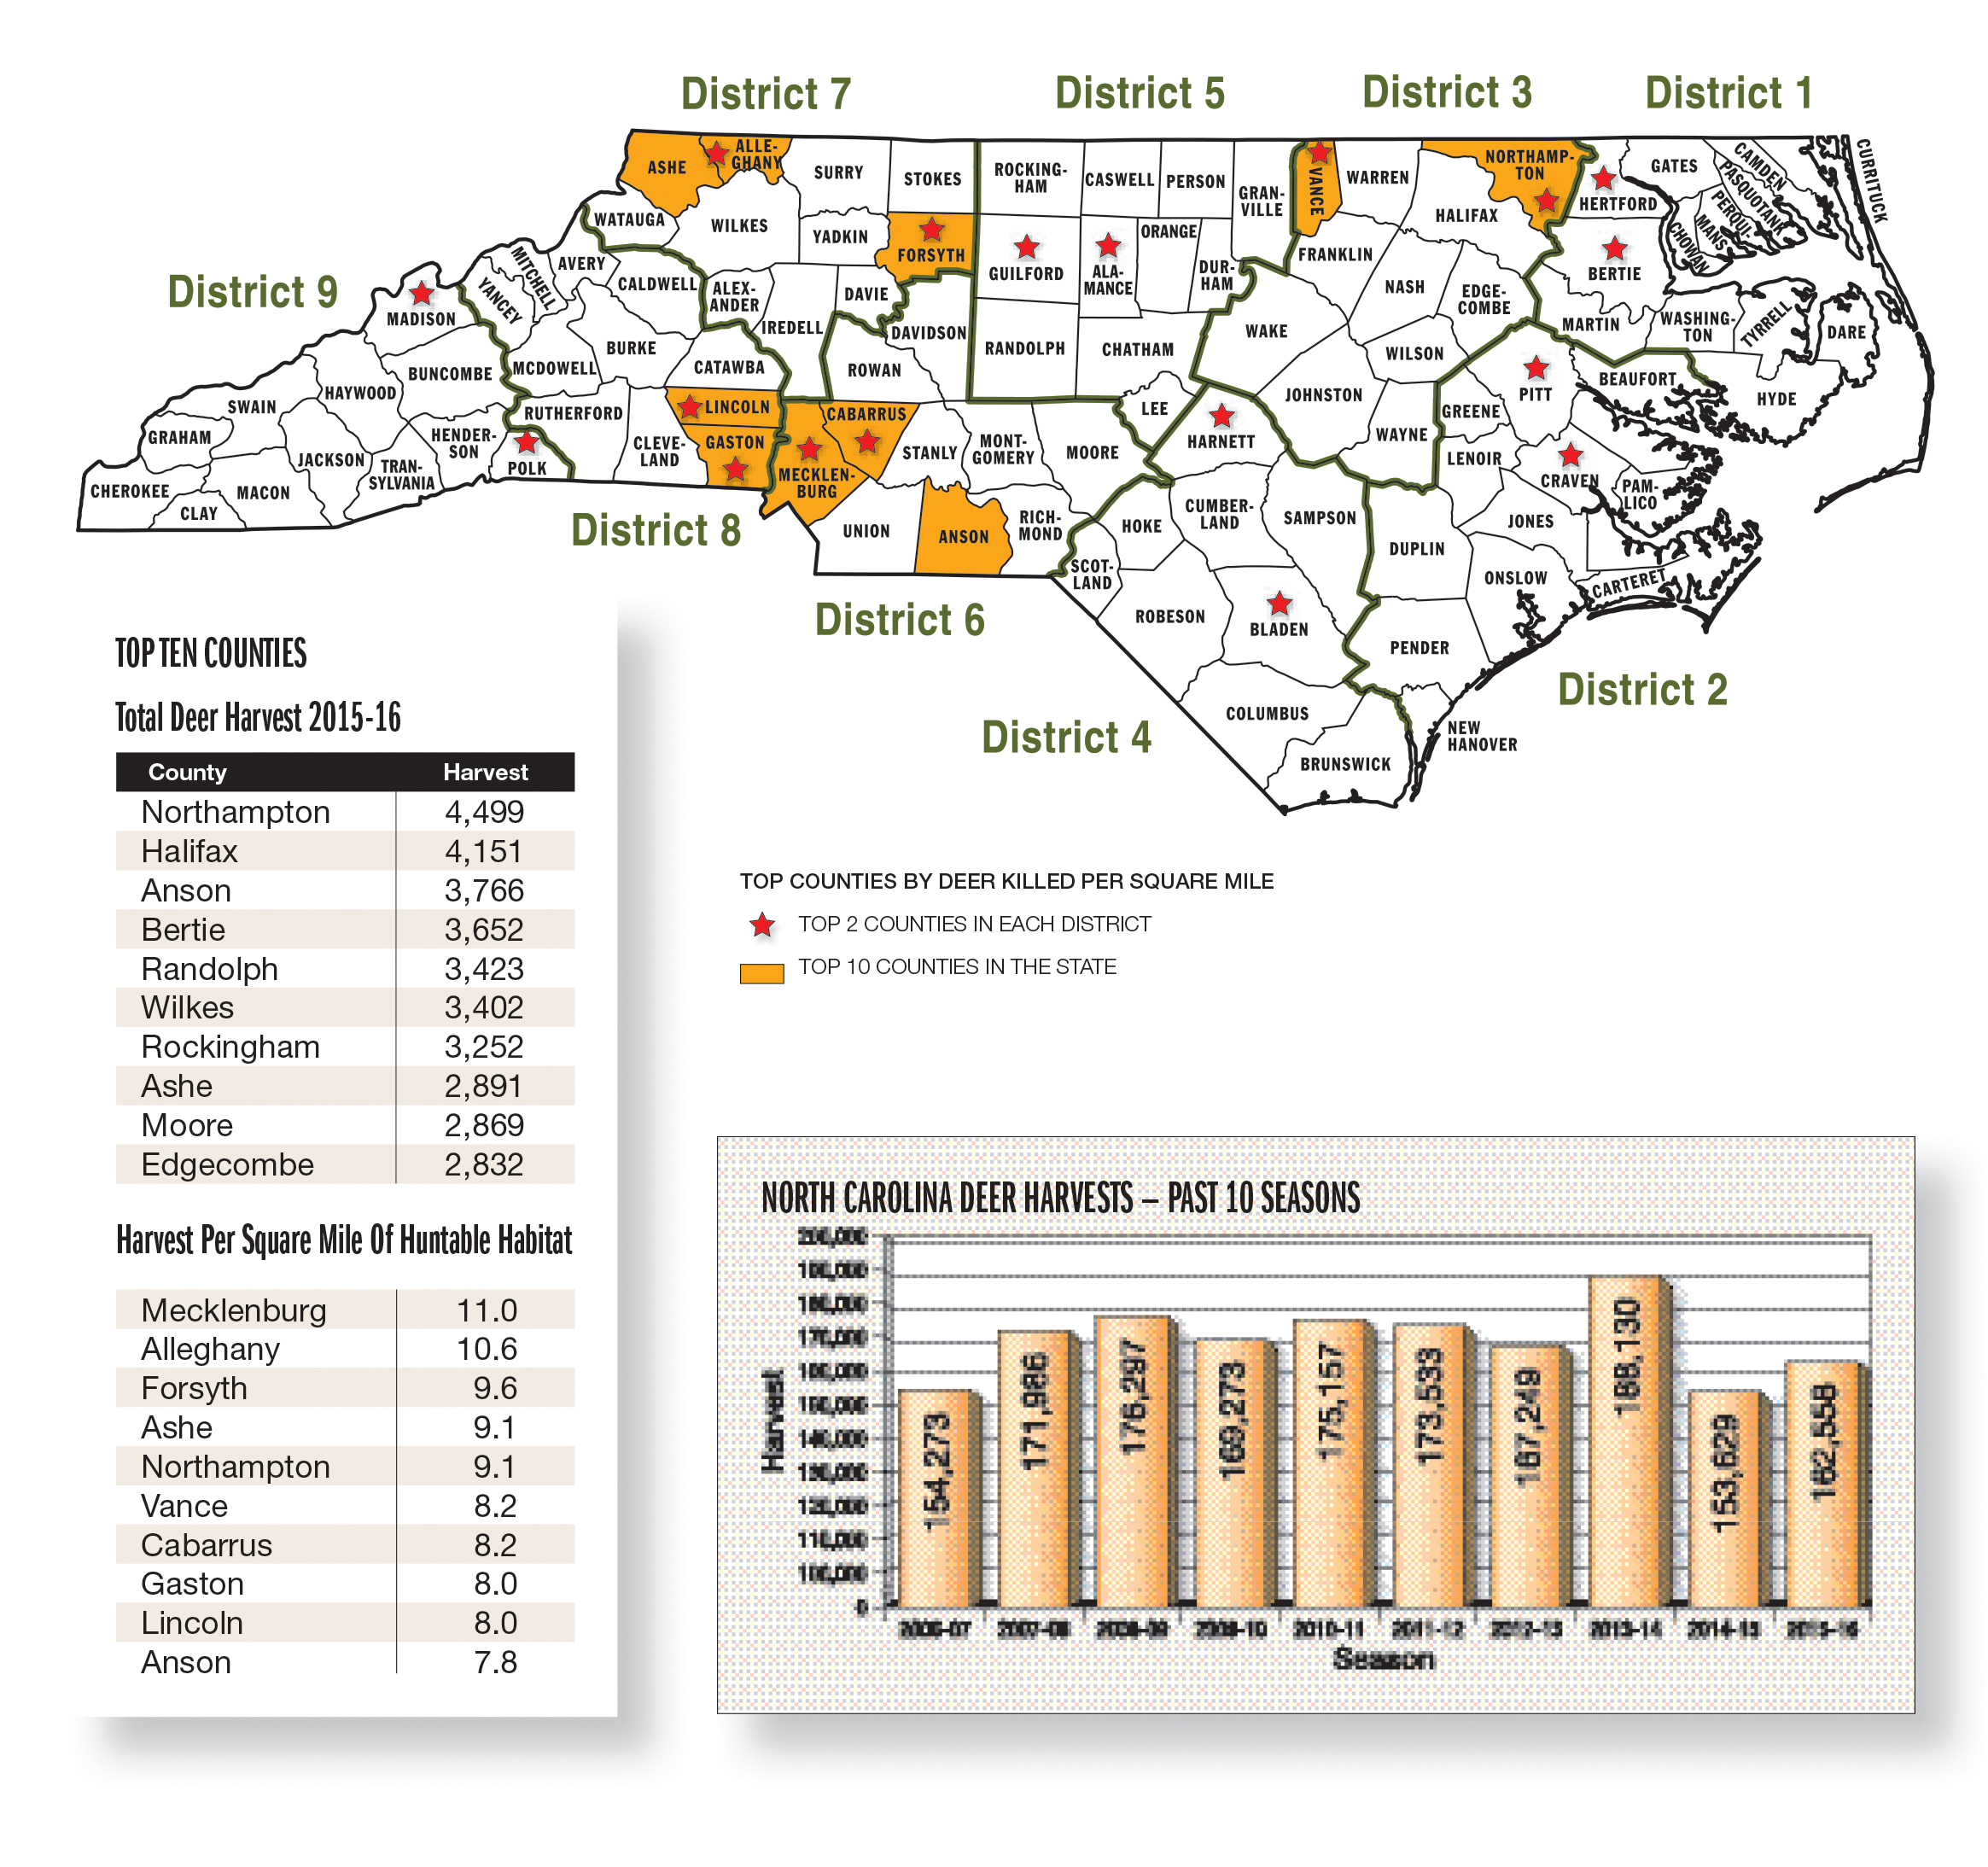 adult dating western north carolina Pockets of lostness map view the 250 pockets of concentrated lostness in nc next step videos nc baptists are taking the next step to impact lostness.